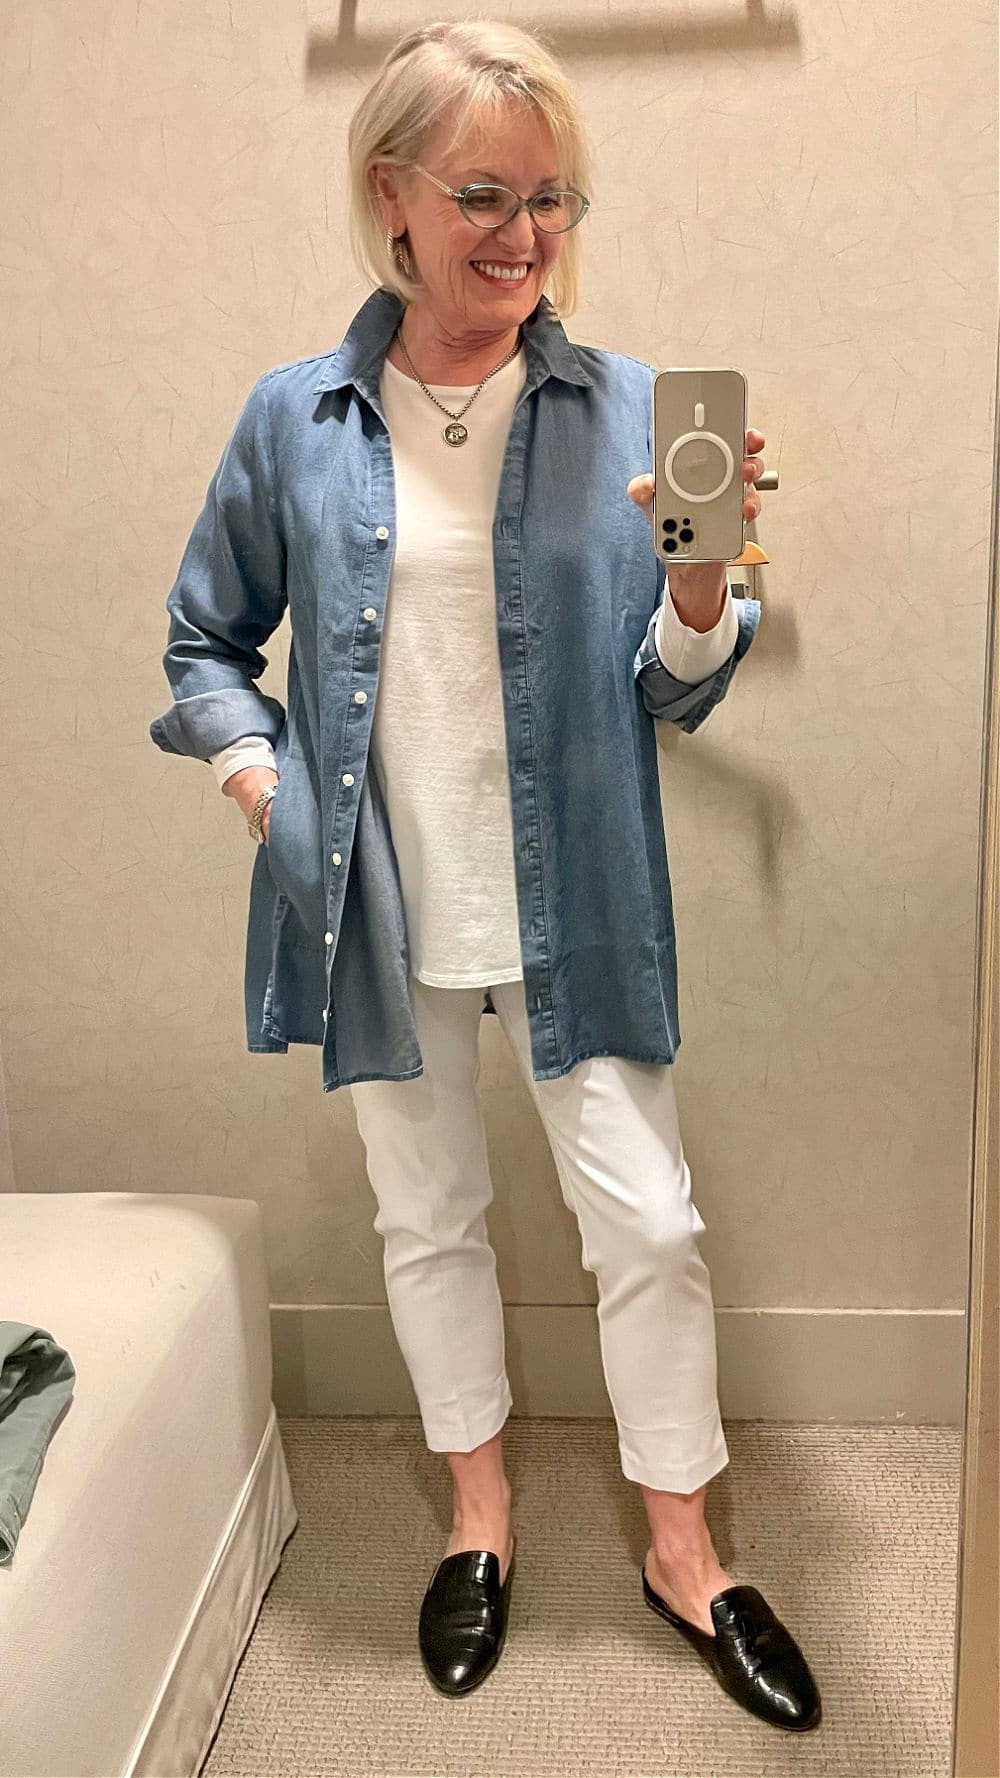 jennifer of a well styled life wearinf denim shirt with white jeans and top